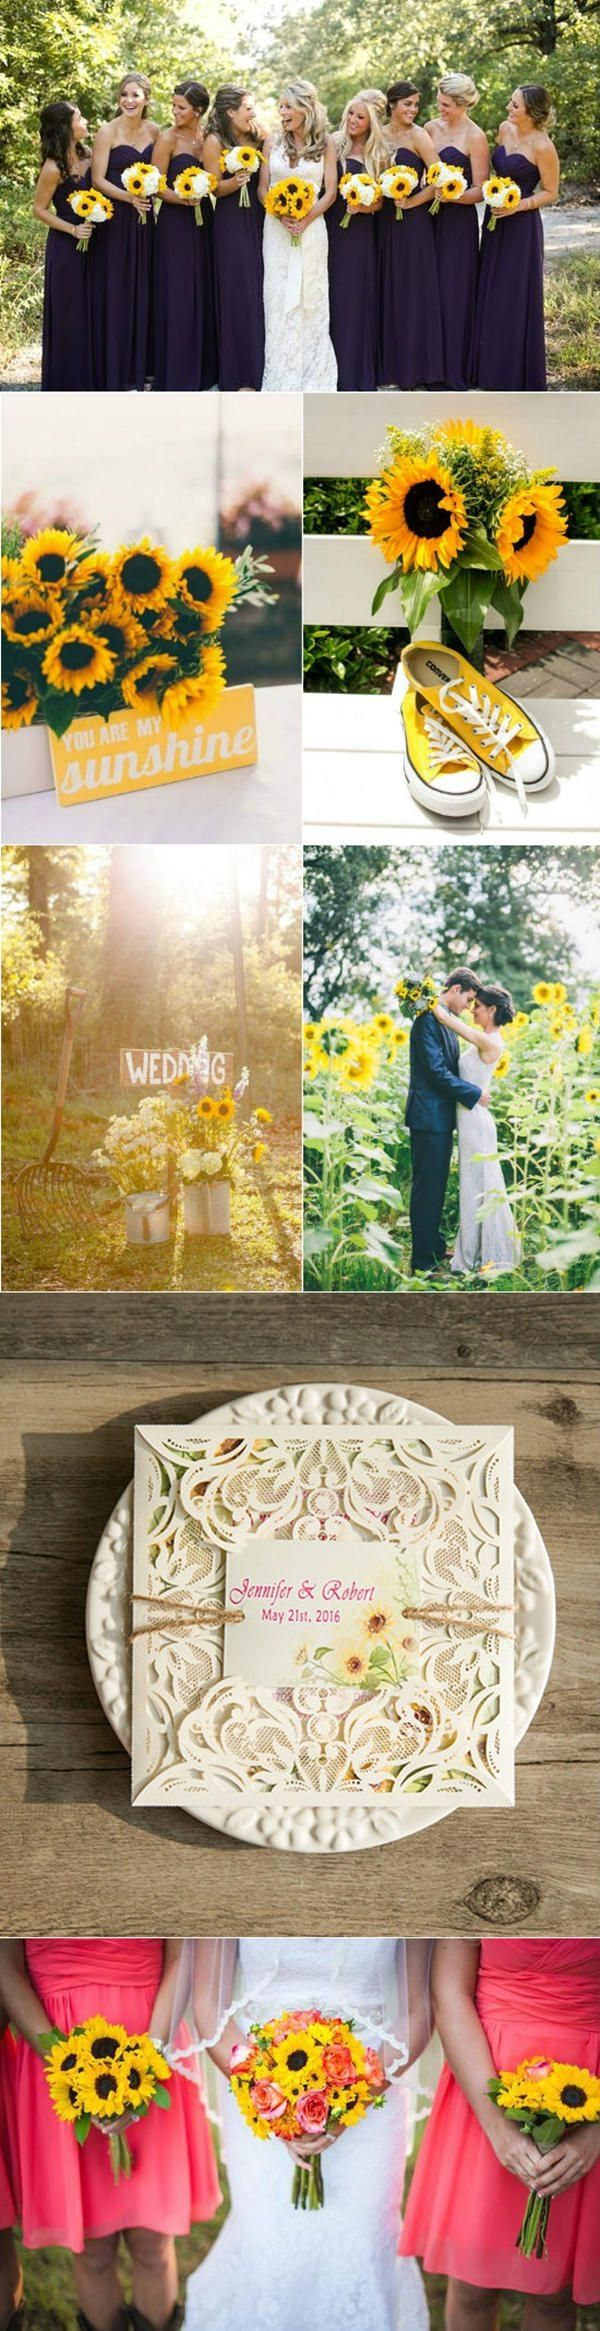 Country rustic sunflower wedding ideas for 2016 spring by louisa country rustic sunflower wedding ideas for 2016 spring by louisa junglespirit Choice Image